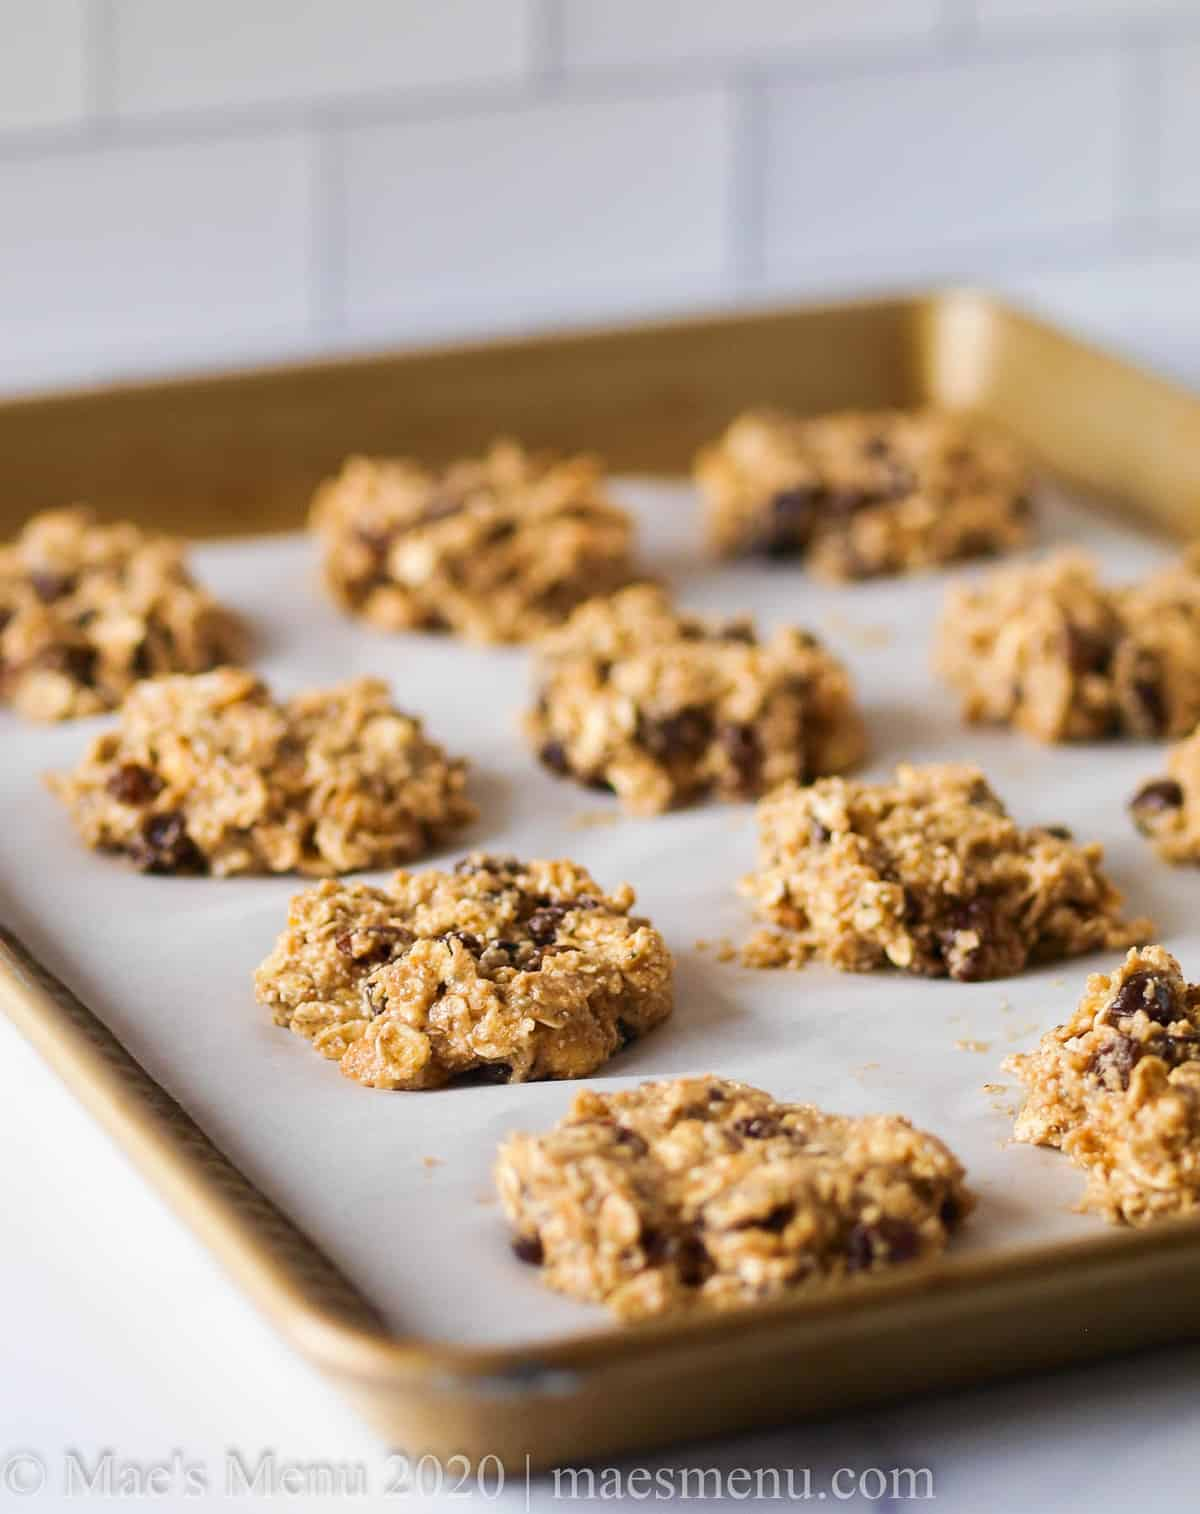 A tray of oat protein cookies on the counter